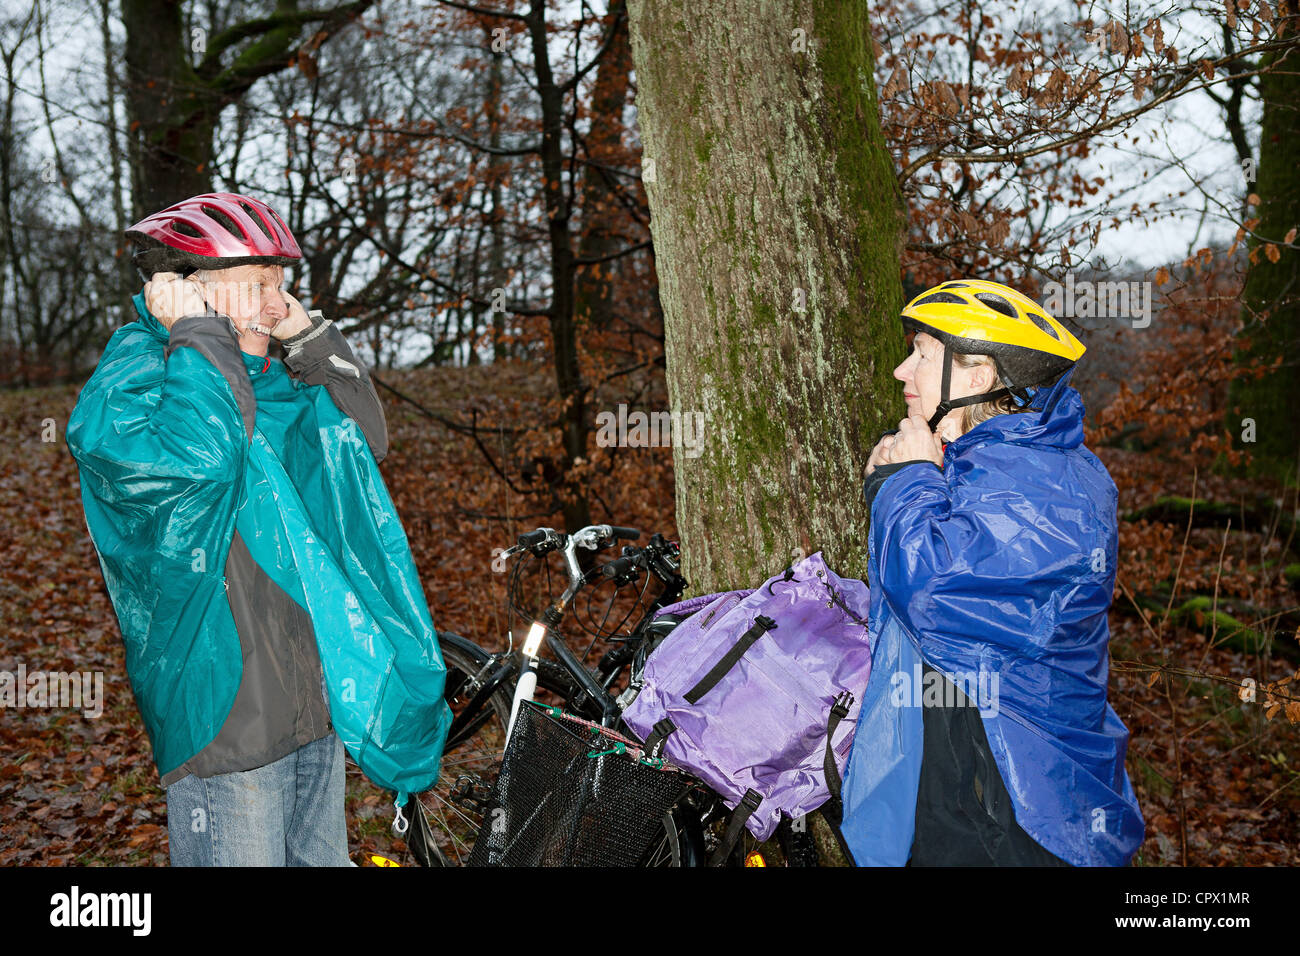 Senior couple preparing to cycle in forest - Stock Image